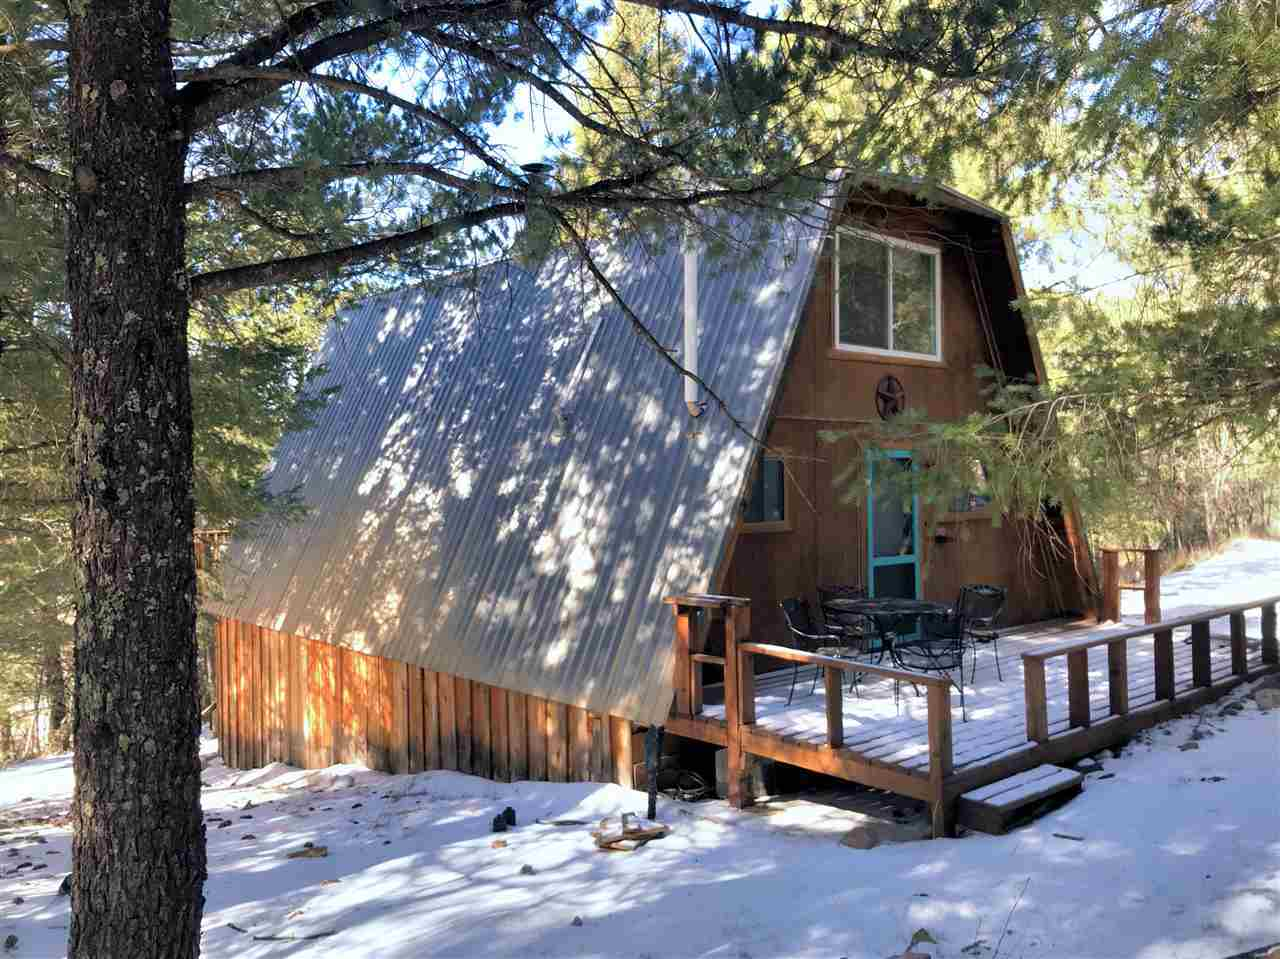 escape homeaway cabin v skyhaven rental cabins vacation near the cloudcroft a luxury